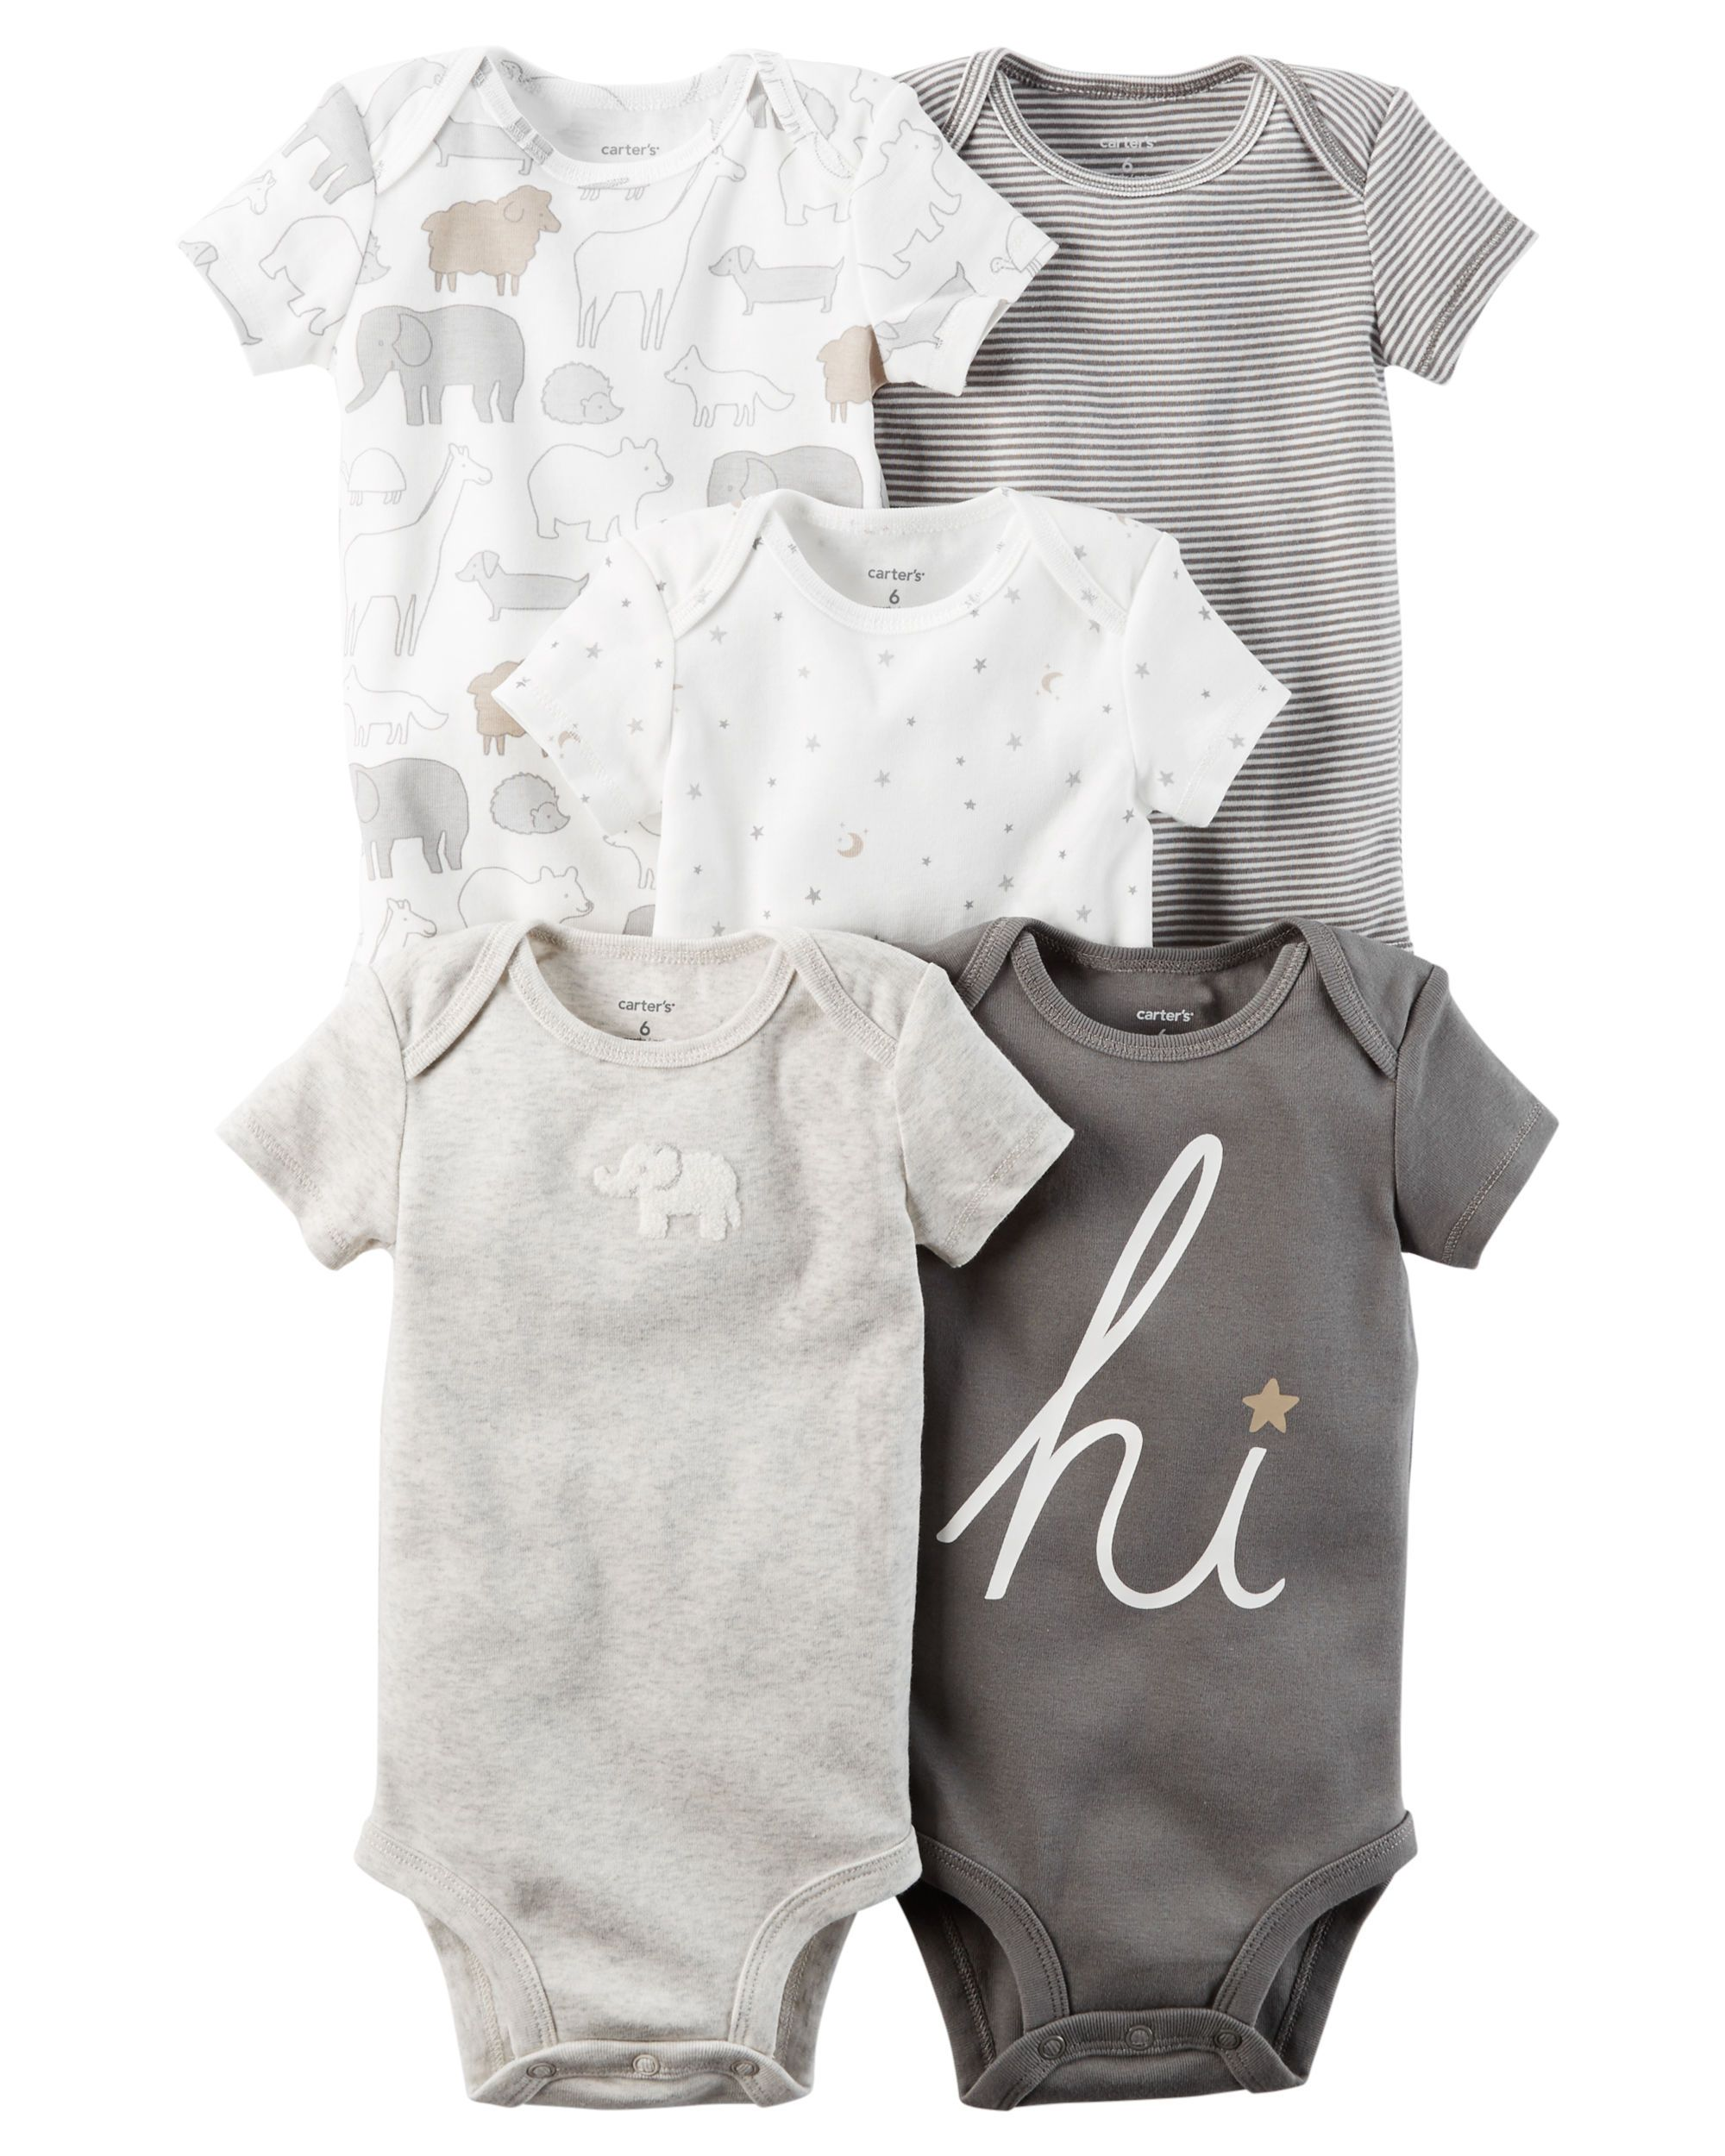 Carters 5-Pack Short-Sleeve Tees for Boys//Girls Size 12M